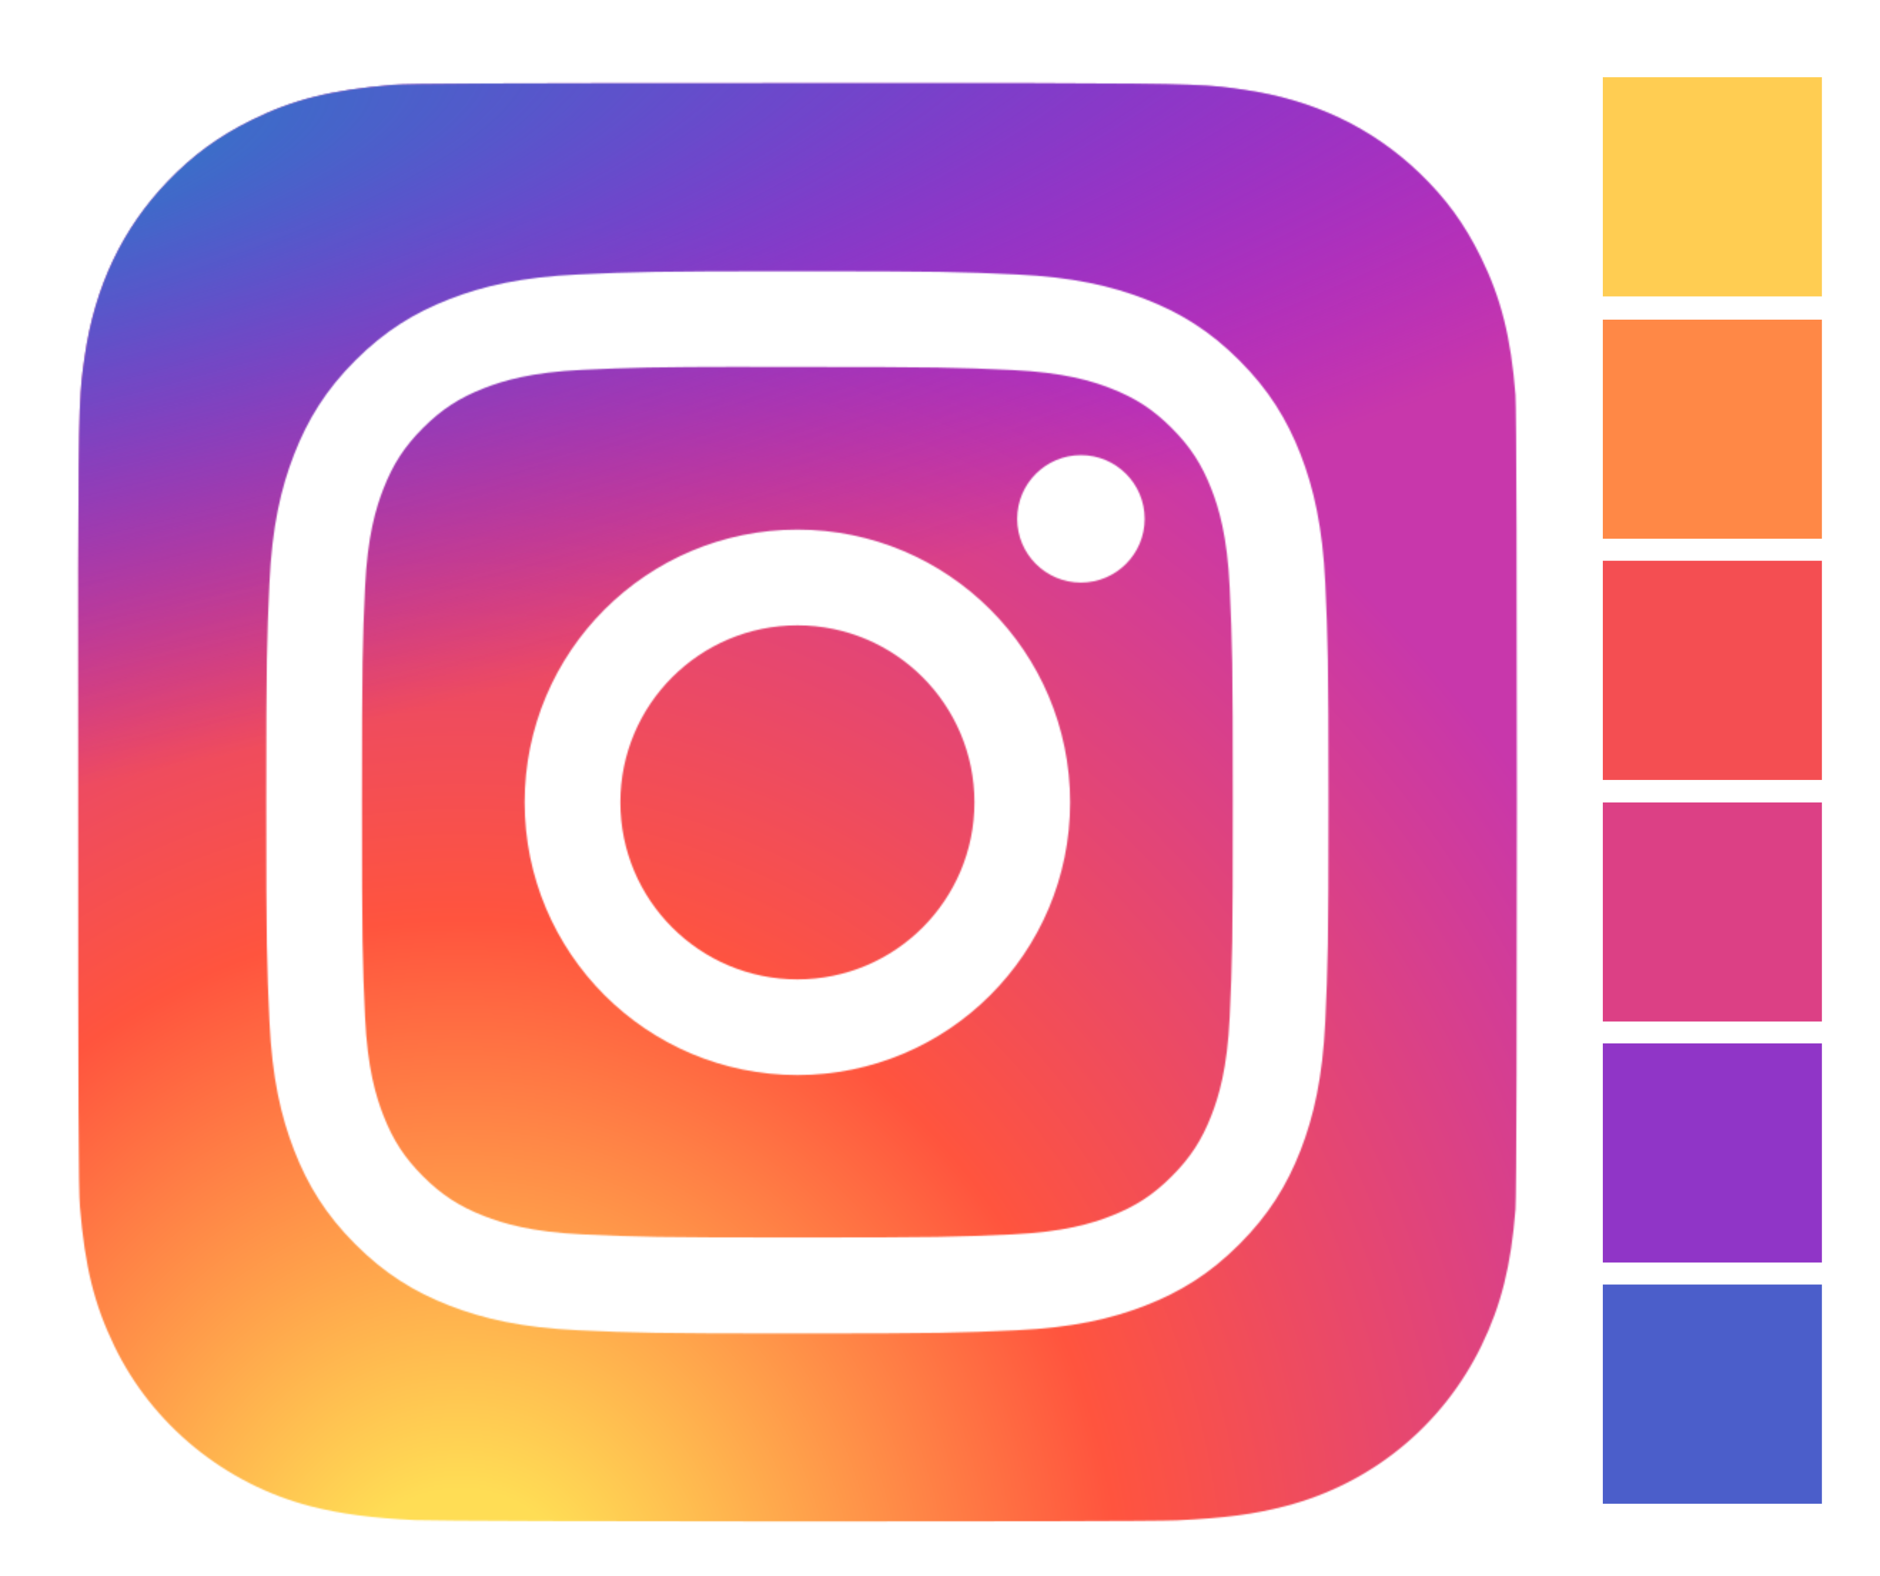 The Instagram logo features a subtle colour gradation from